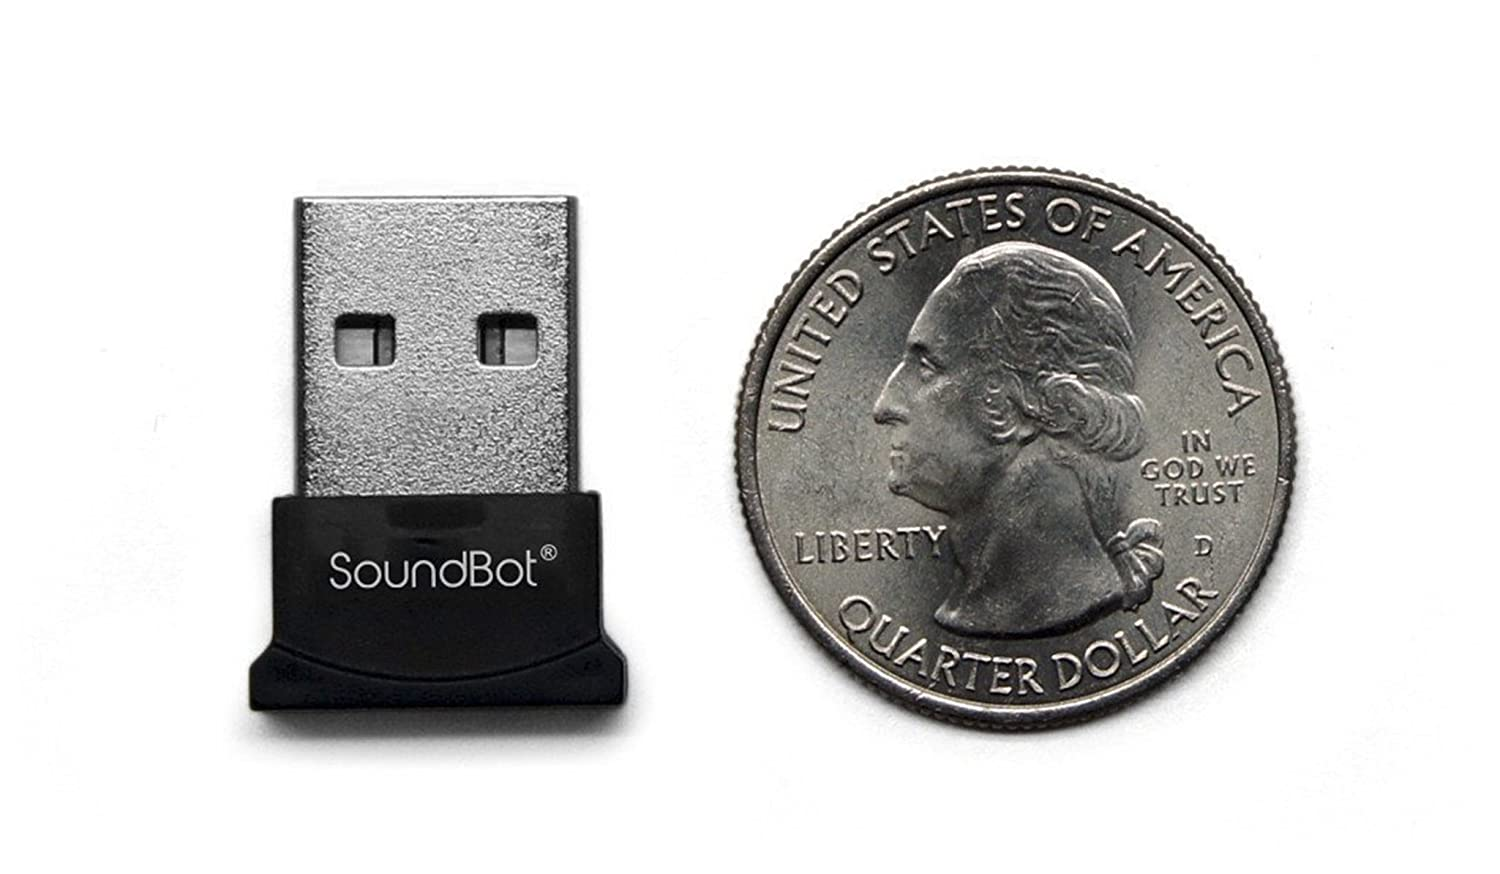 soundbot SB342-BLK Bluetooth 4.0 USB Adapter with 3Mbps High Data Transfer Rate /& 33 Feet Wireless Range